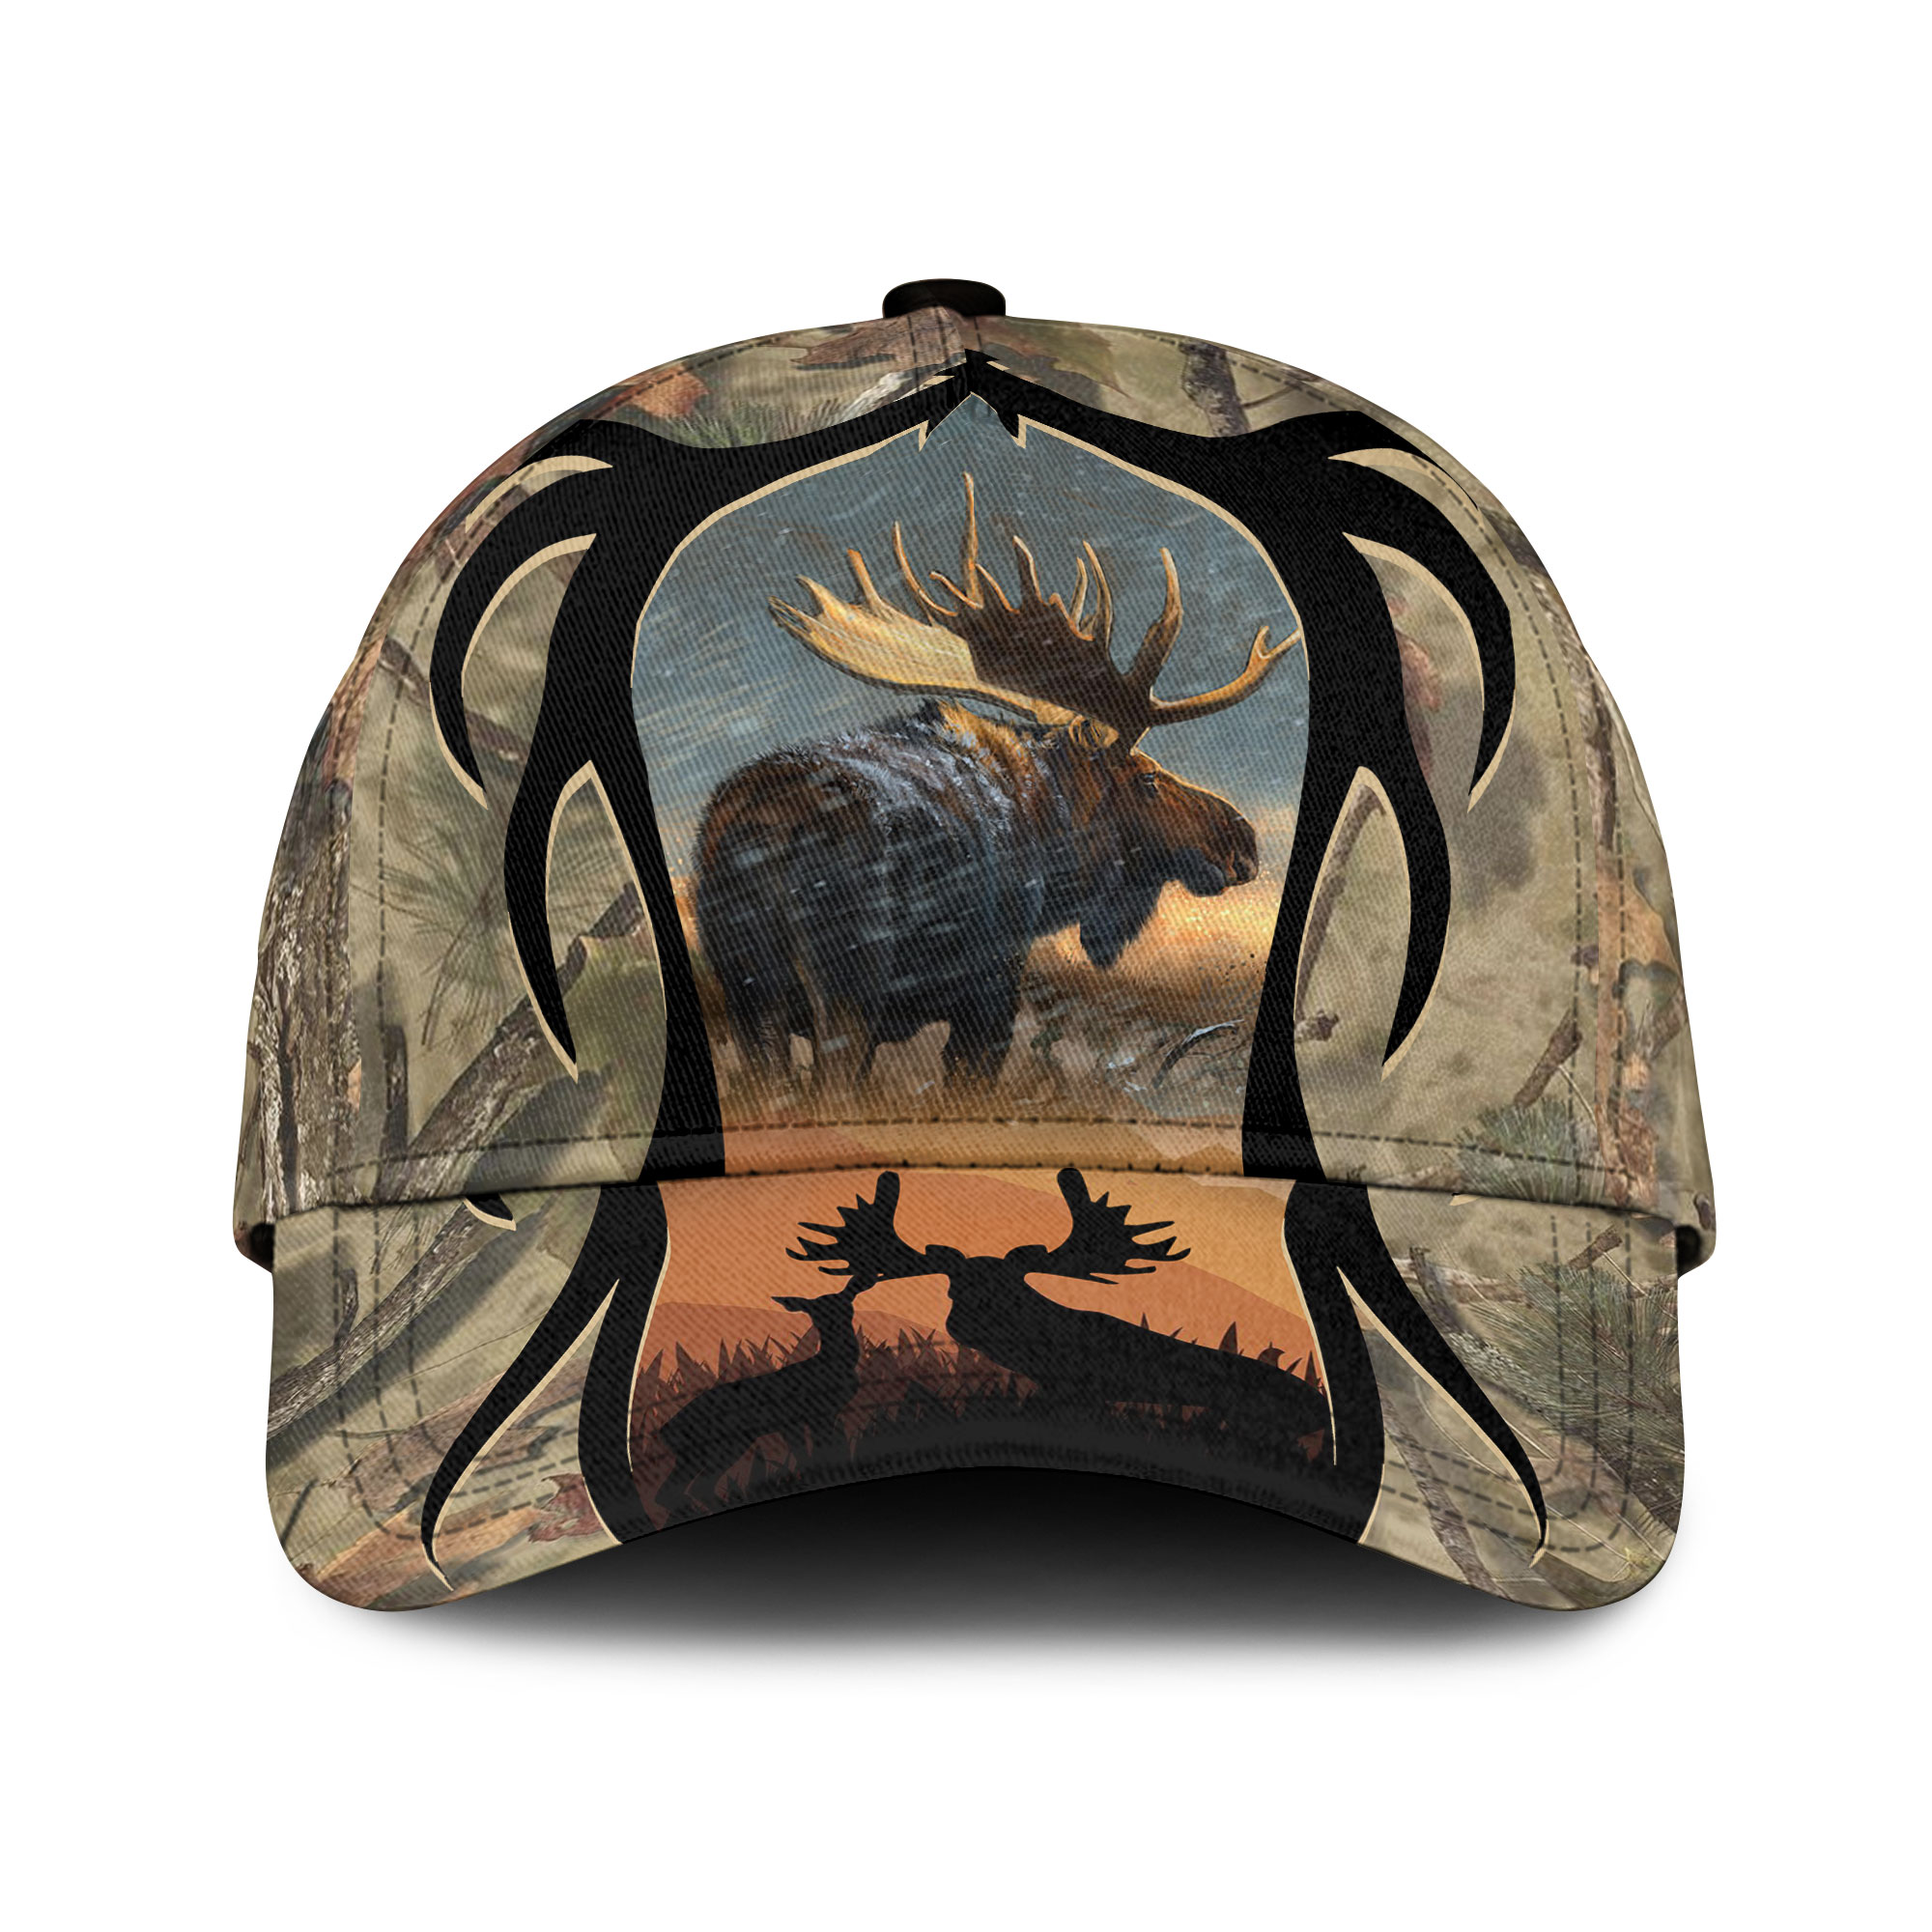 Love Moose Hunting Camouflage Sku 151 Classic Cap